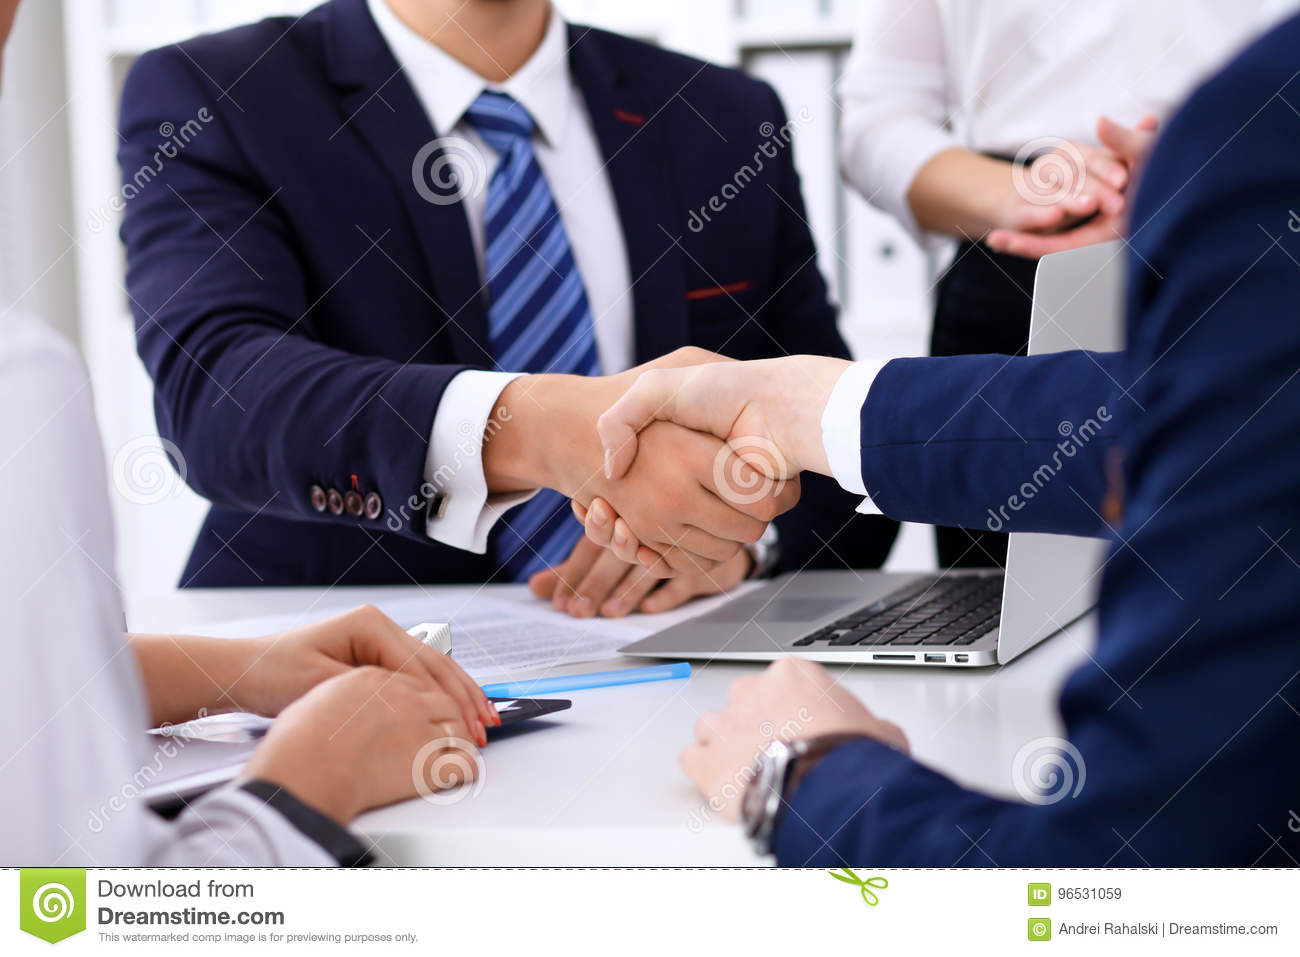 Business handshake at meeting or negotiation in the office. Partners are satisfied because signing contract or financial